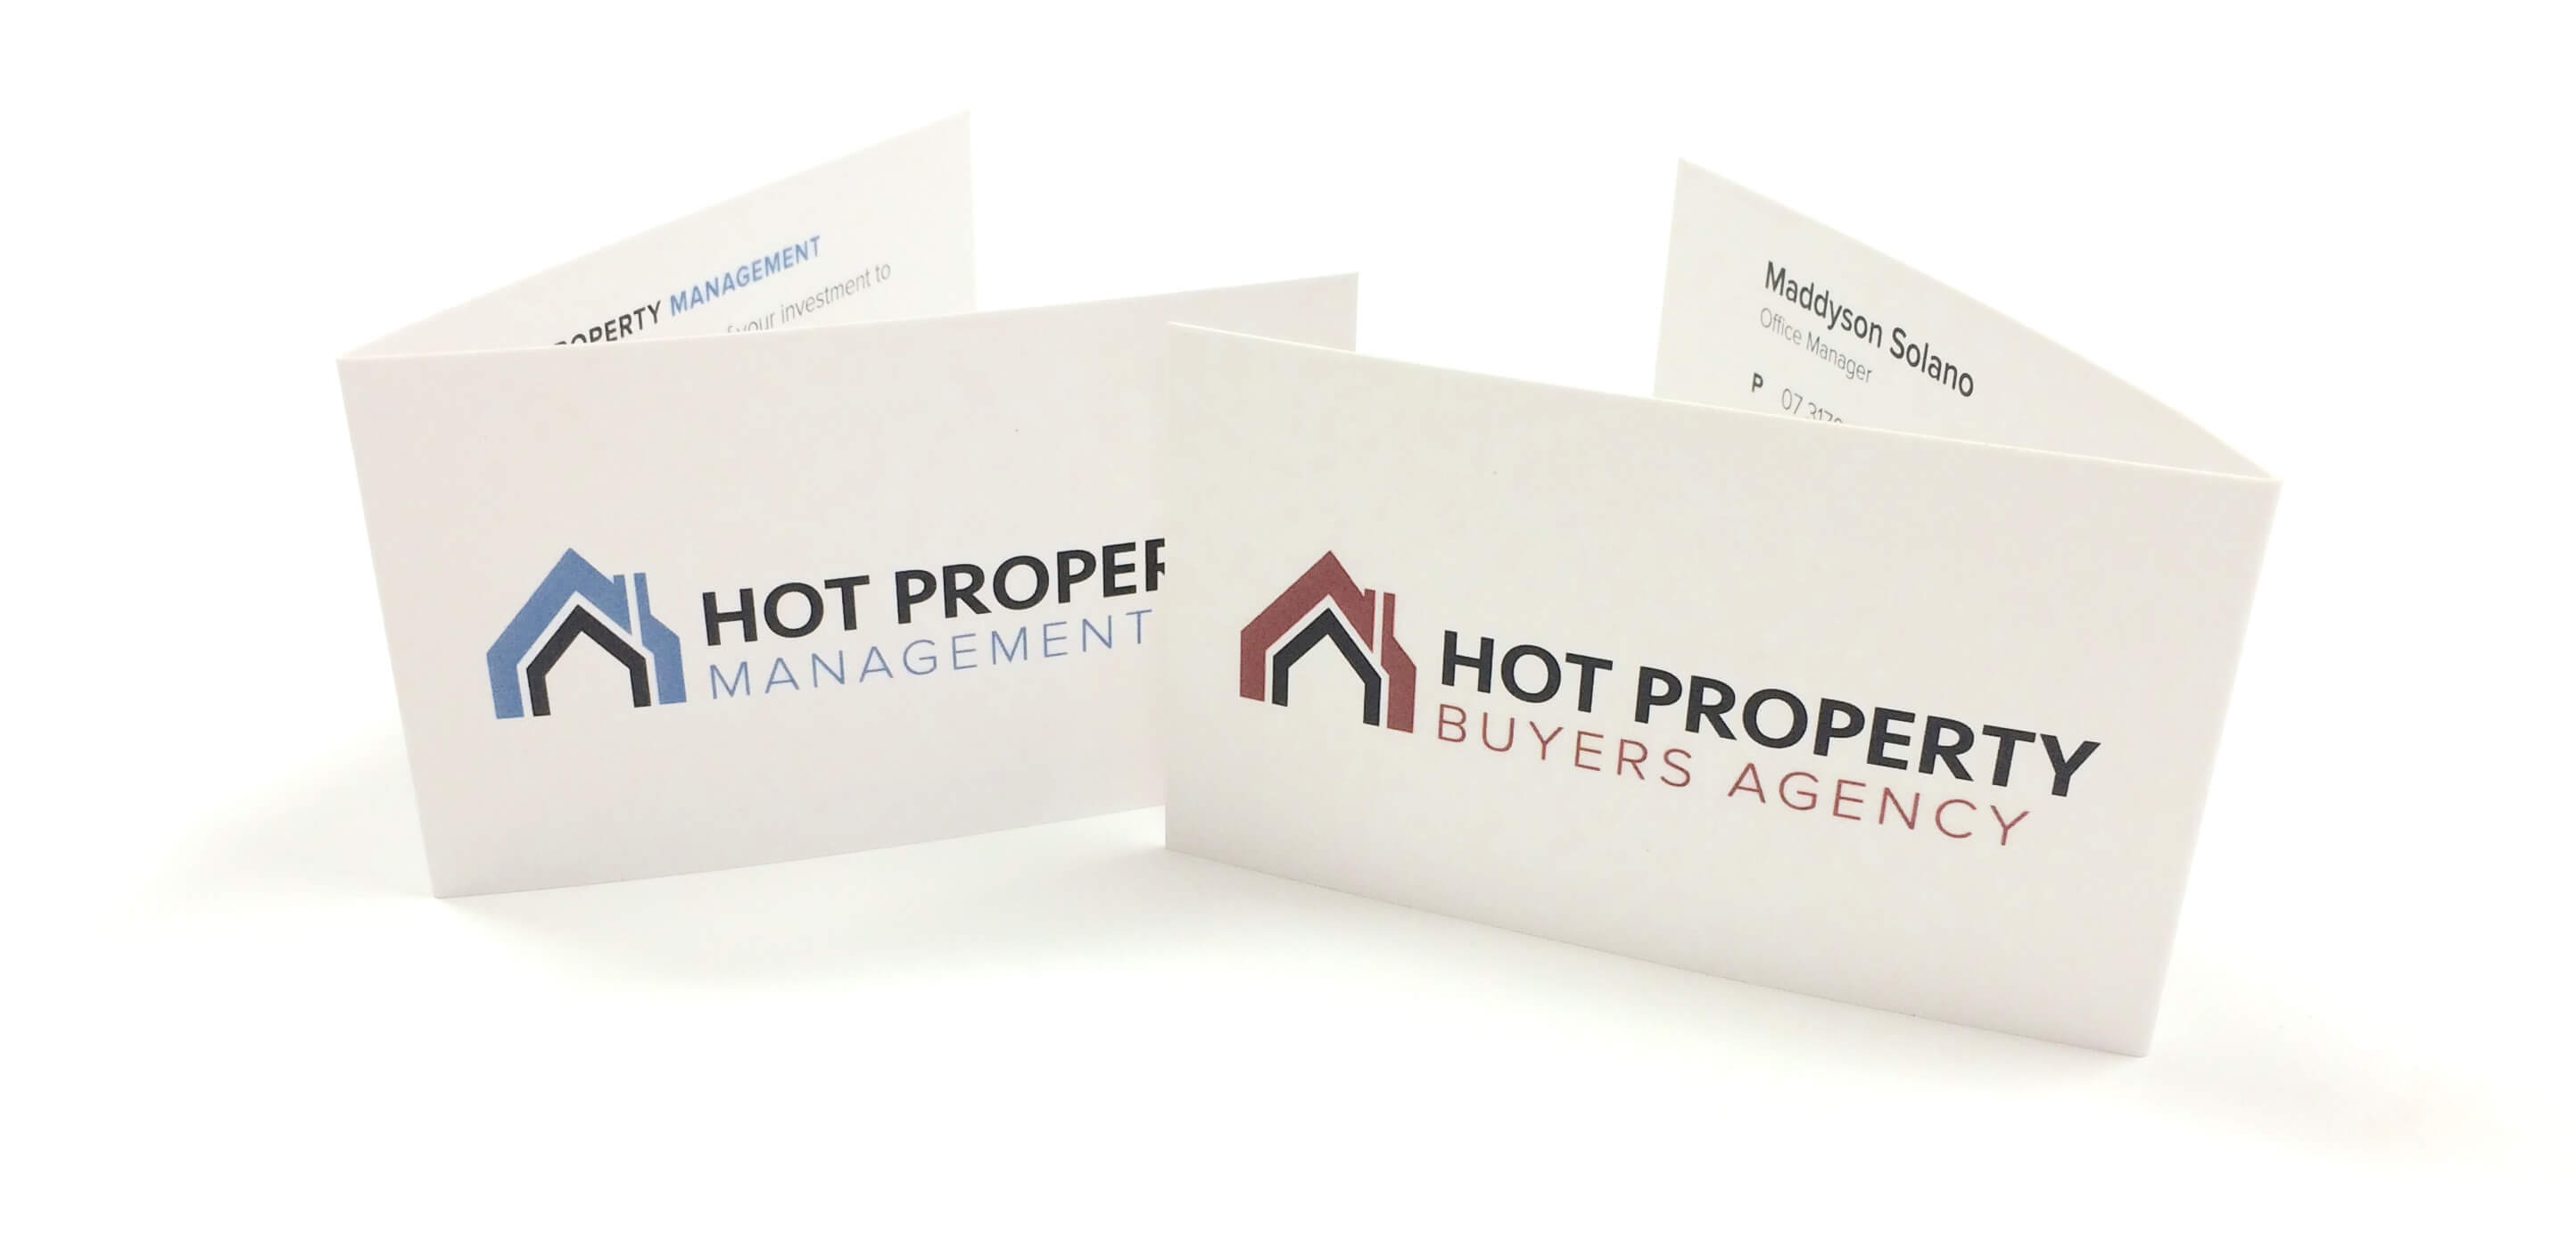 Hot Property Business Cards